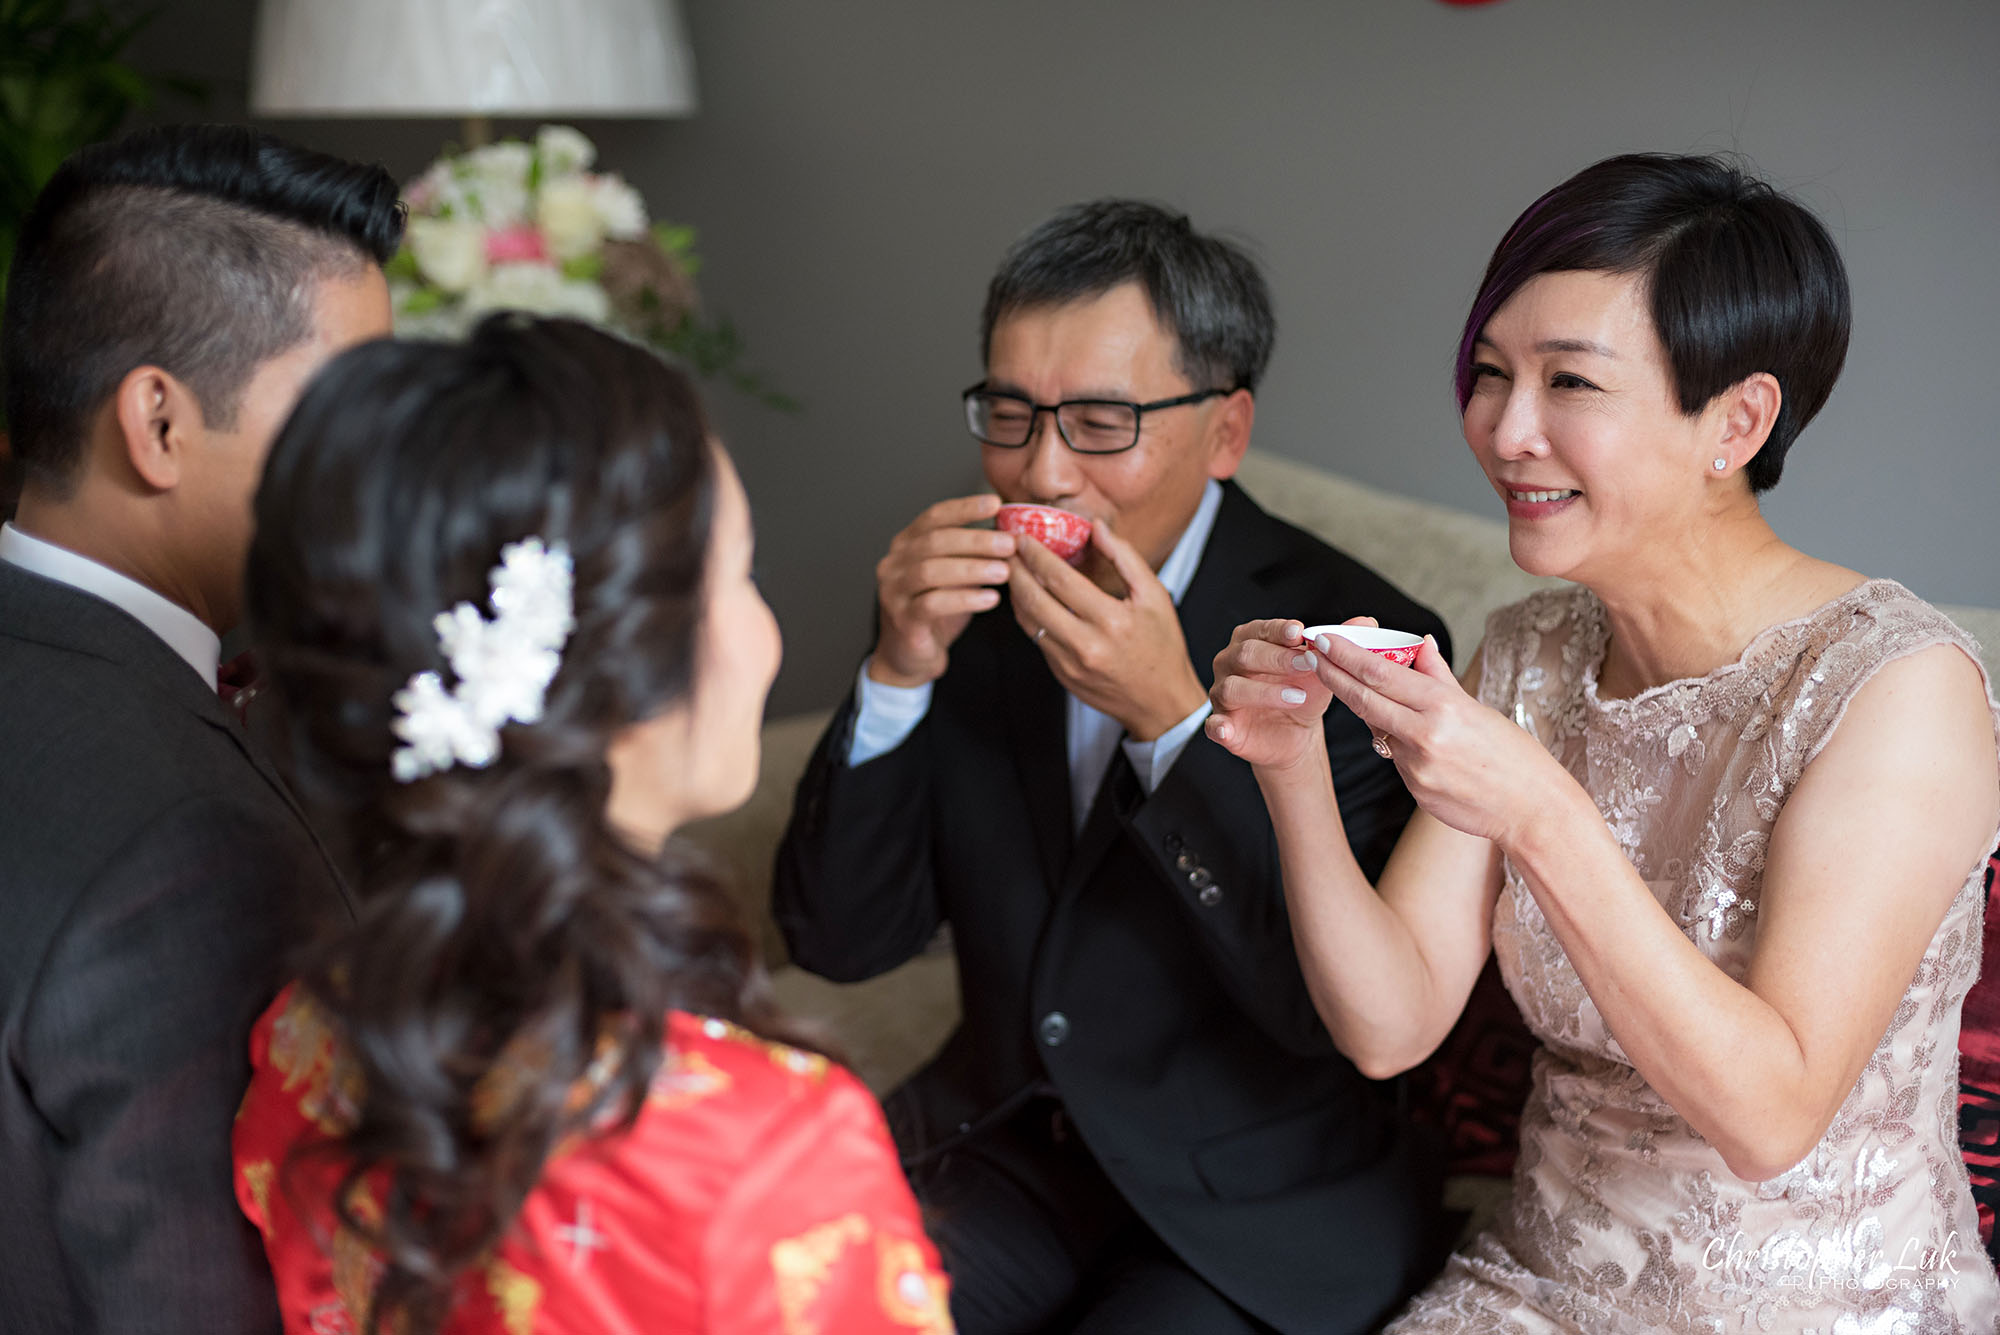 Christopher Luk Photography Toronto Wedding Photographer Chinese Tea Ceremony Bride Groom Mother Father Candid Natural Photojournalistic Happy Smile